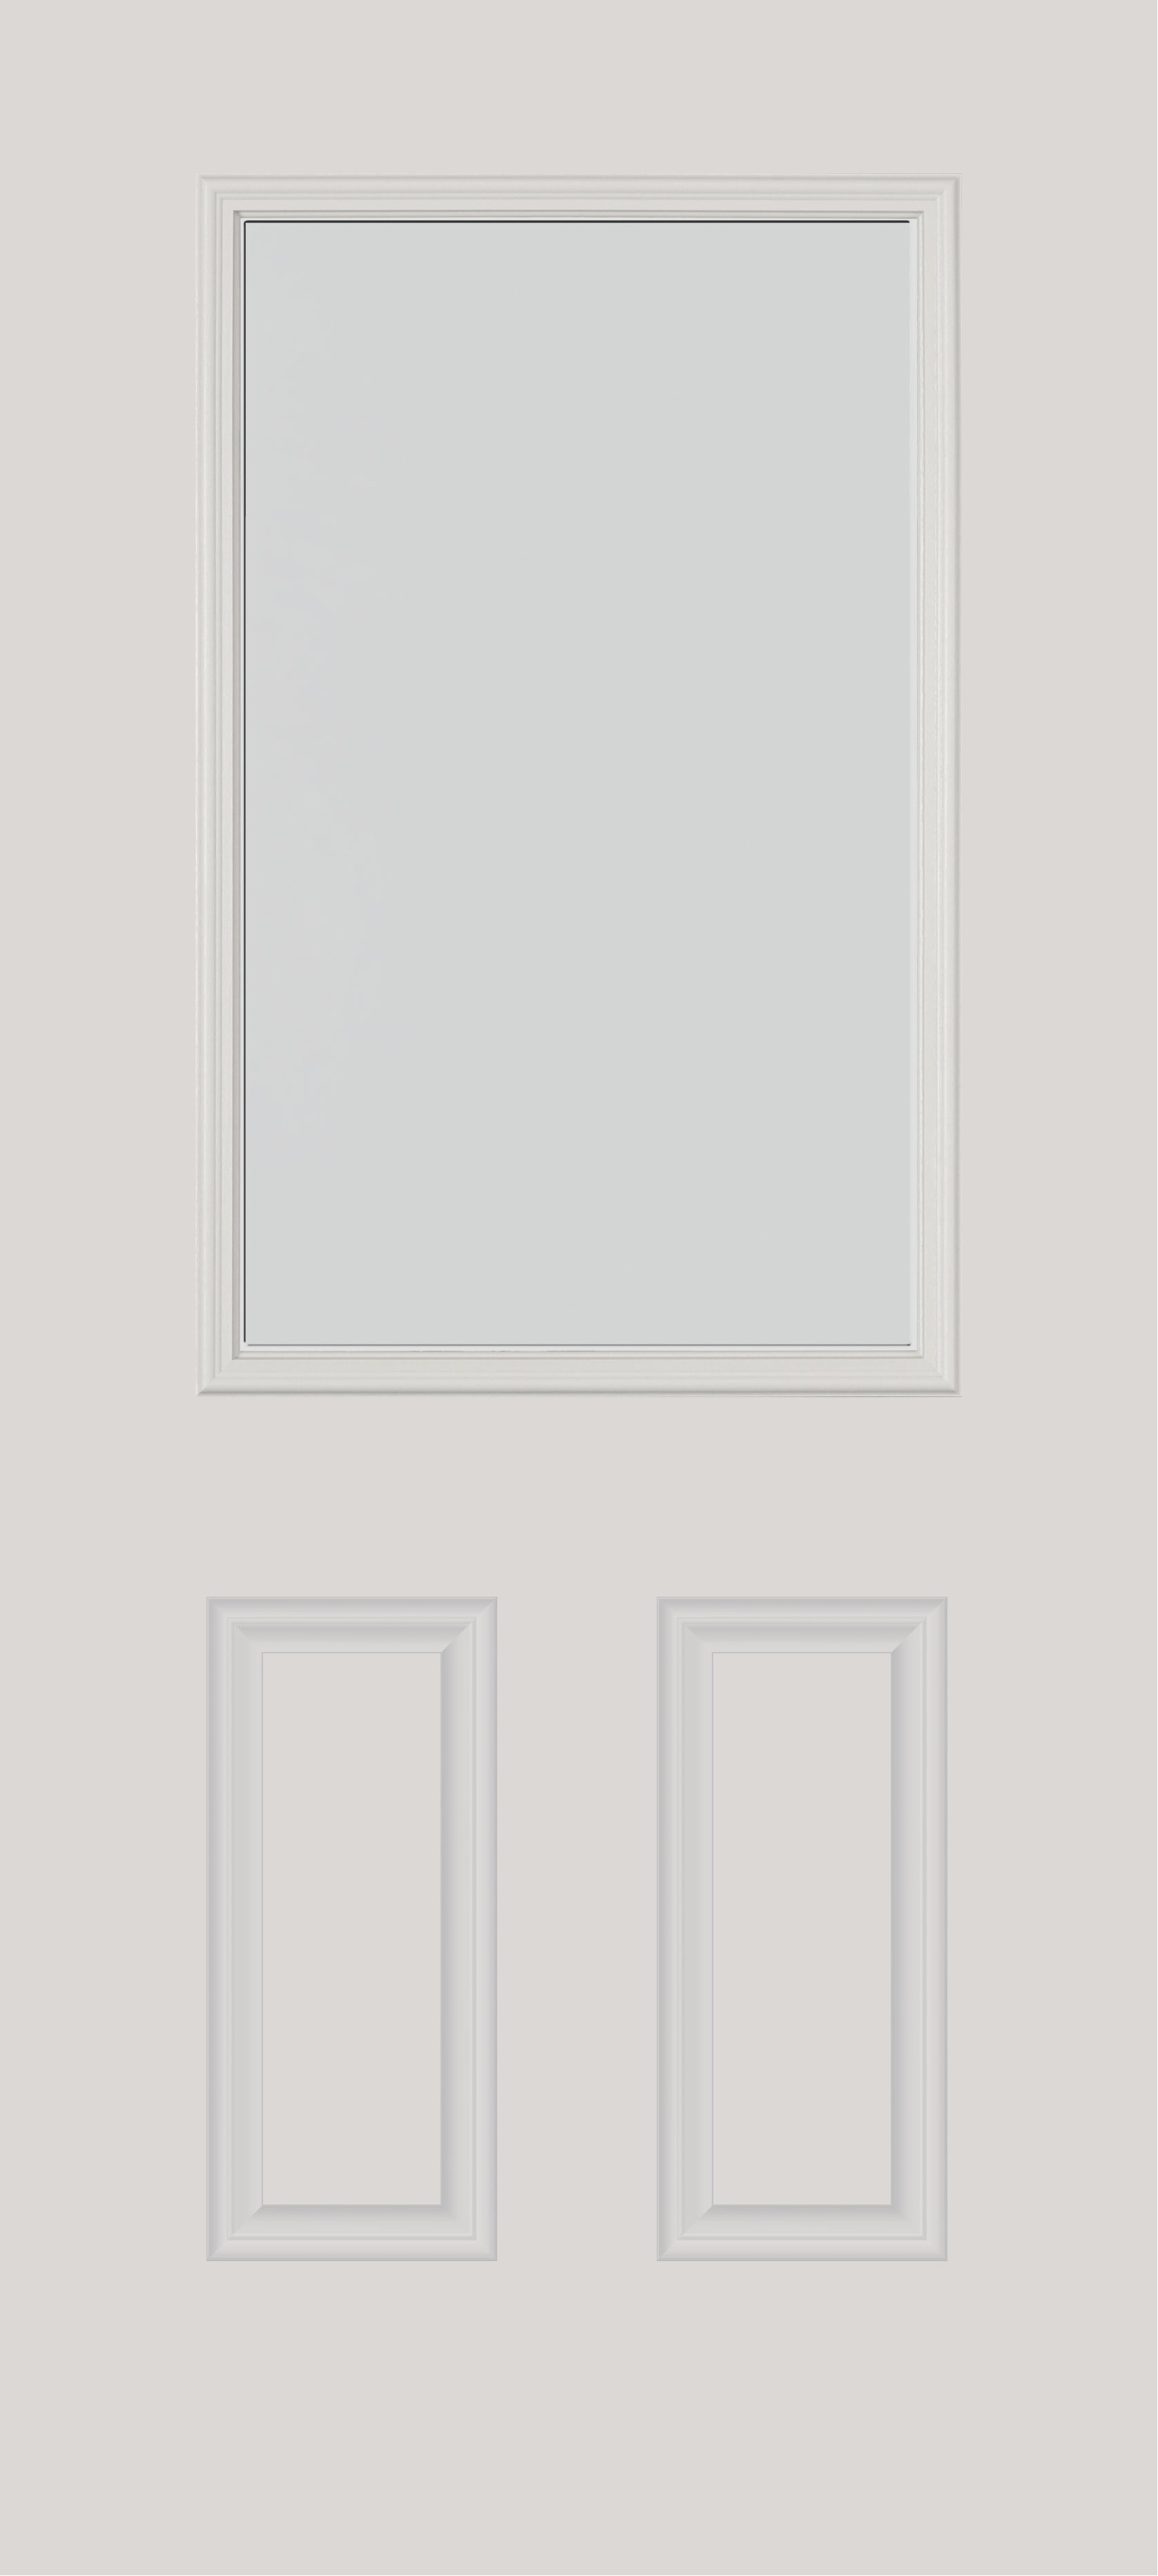 "Frost Glass and Frame Kit (Half Lite 22"" x 36"" Glass Size)"